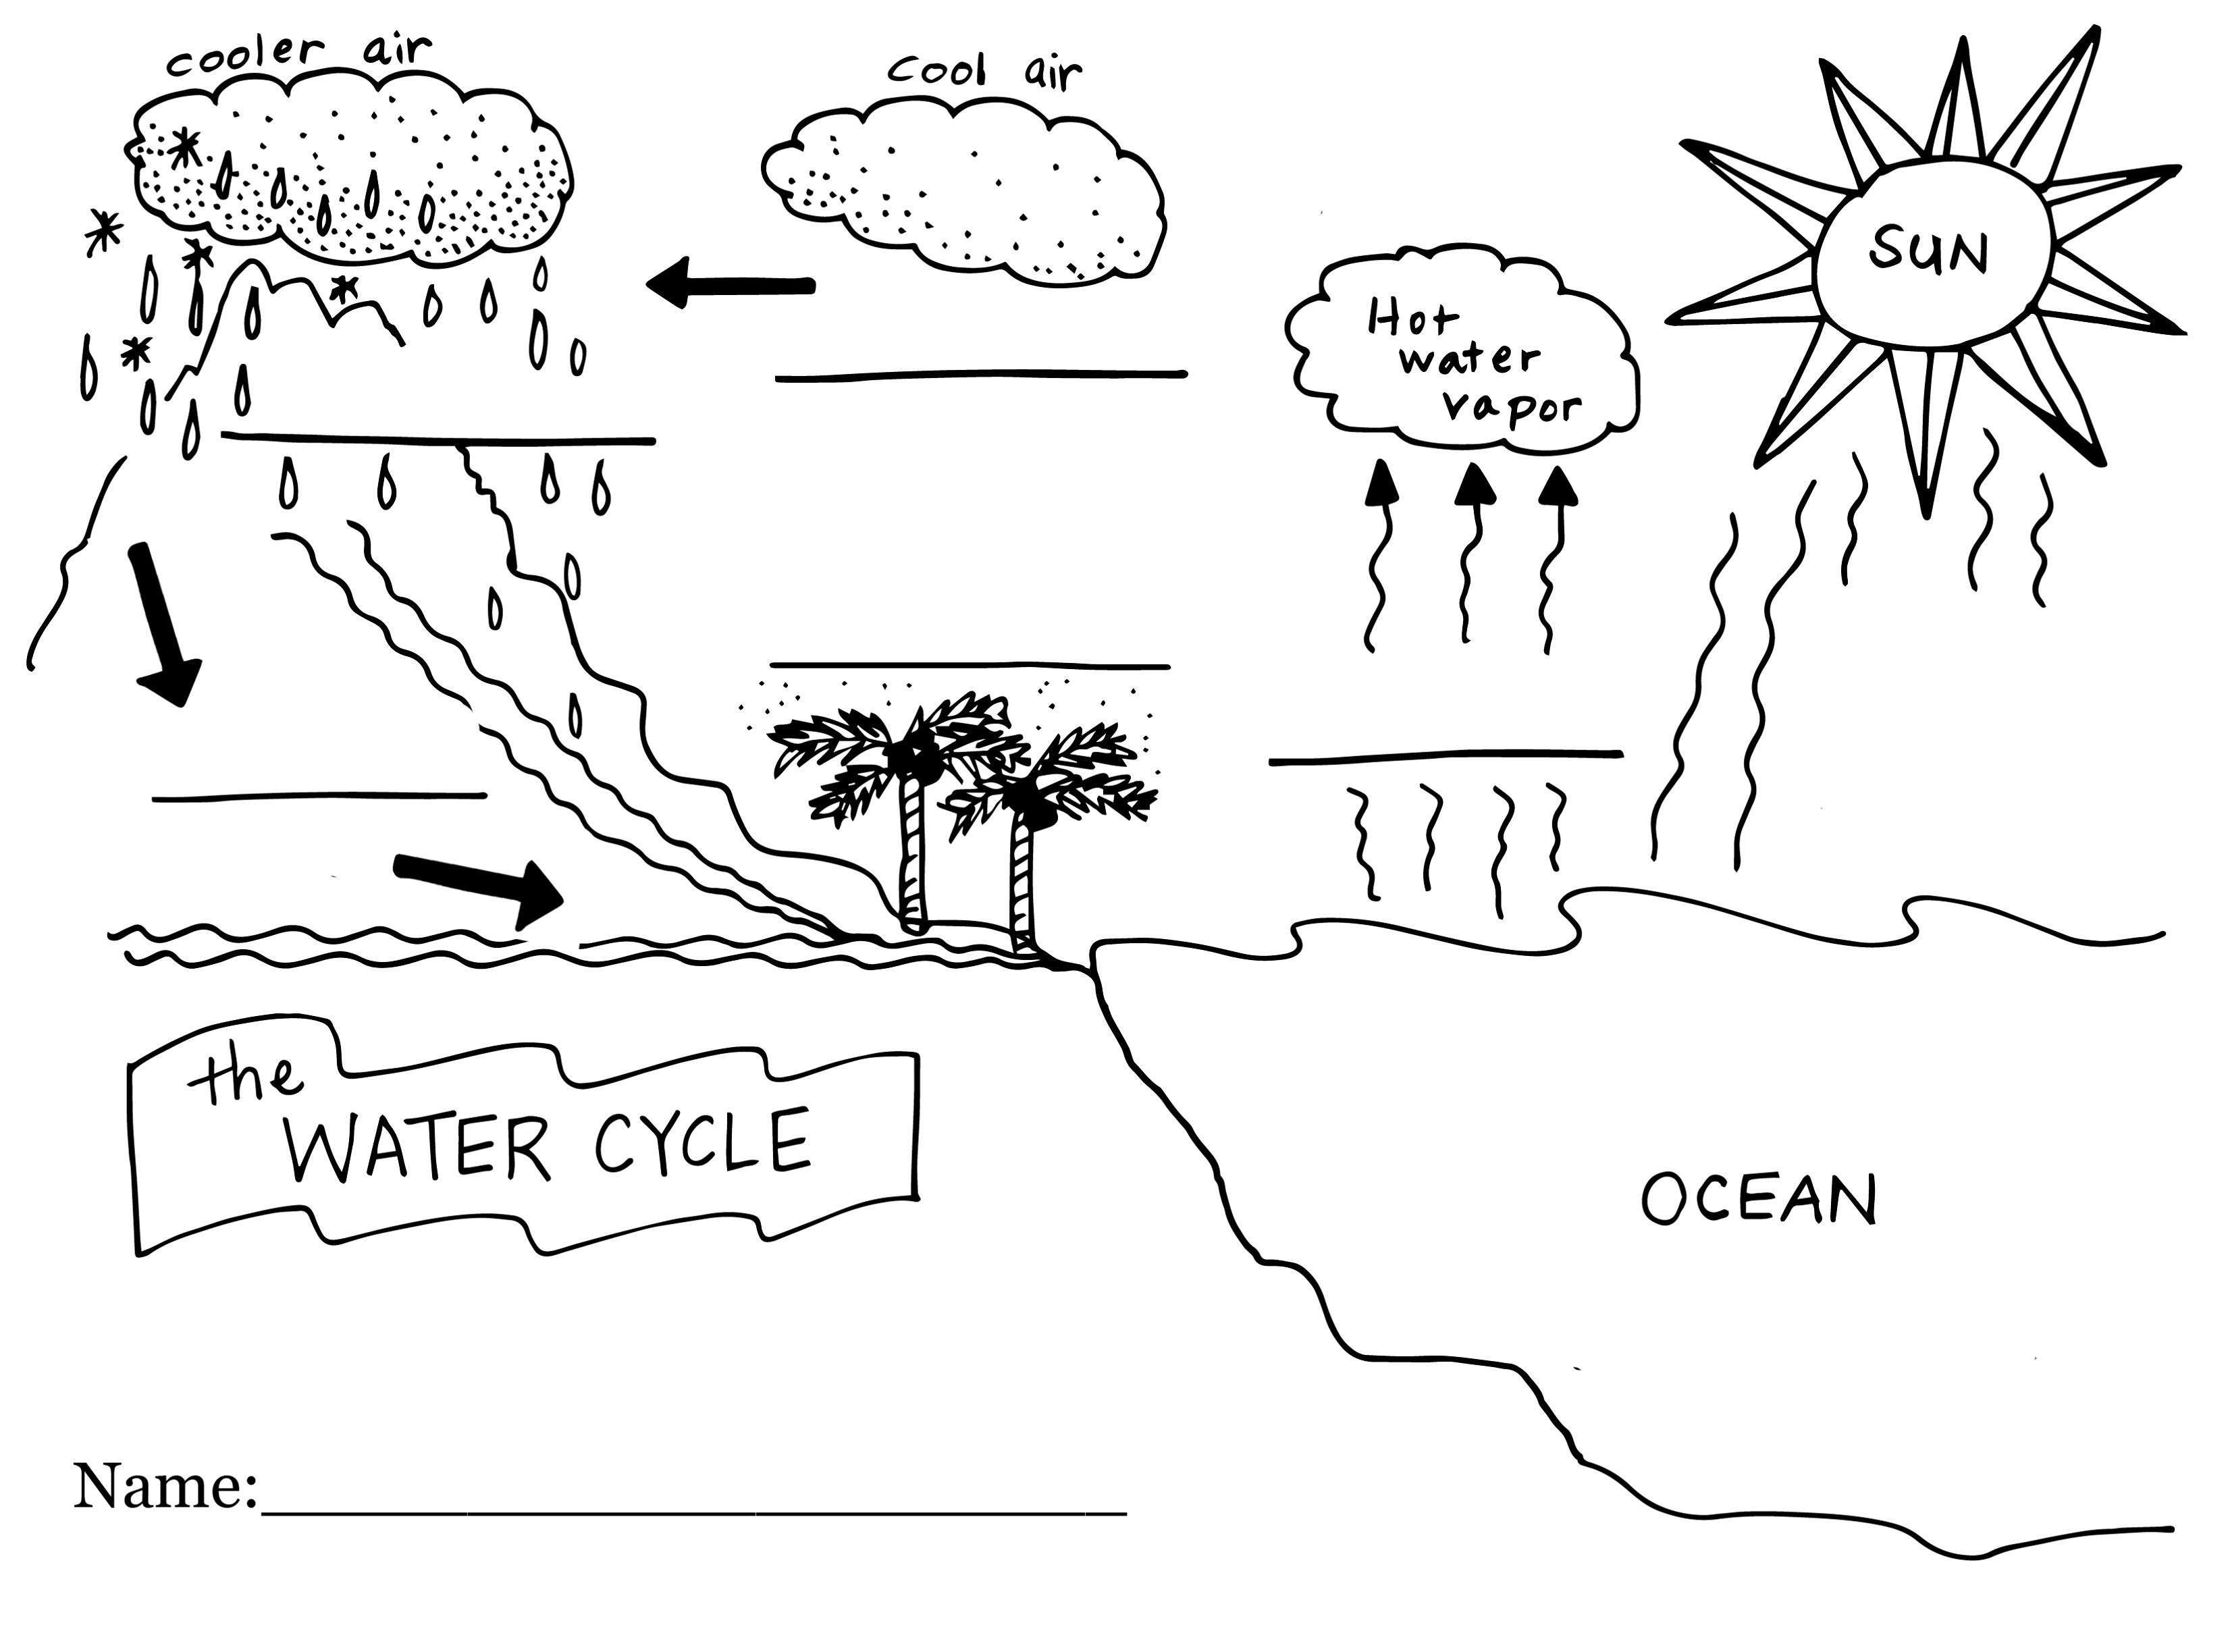 Water Cycle Blank Diagram